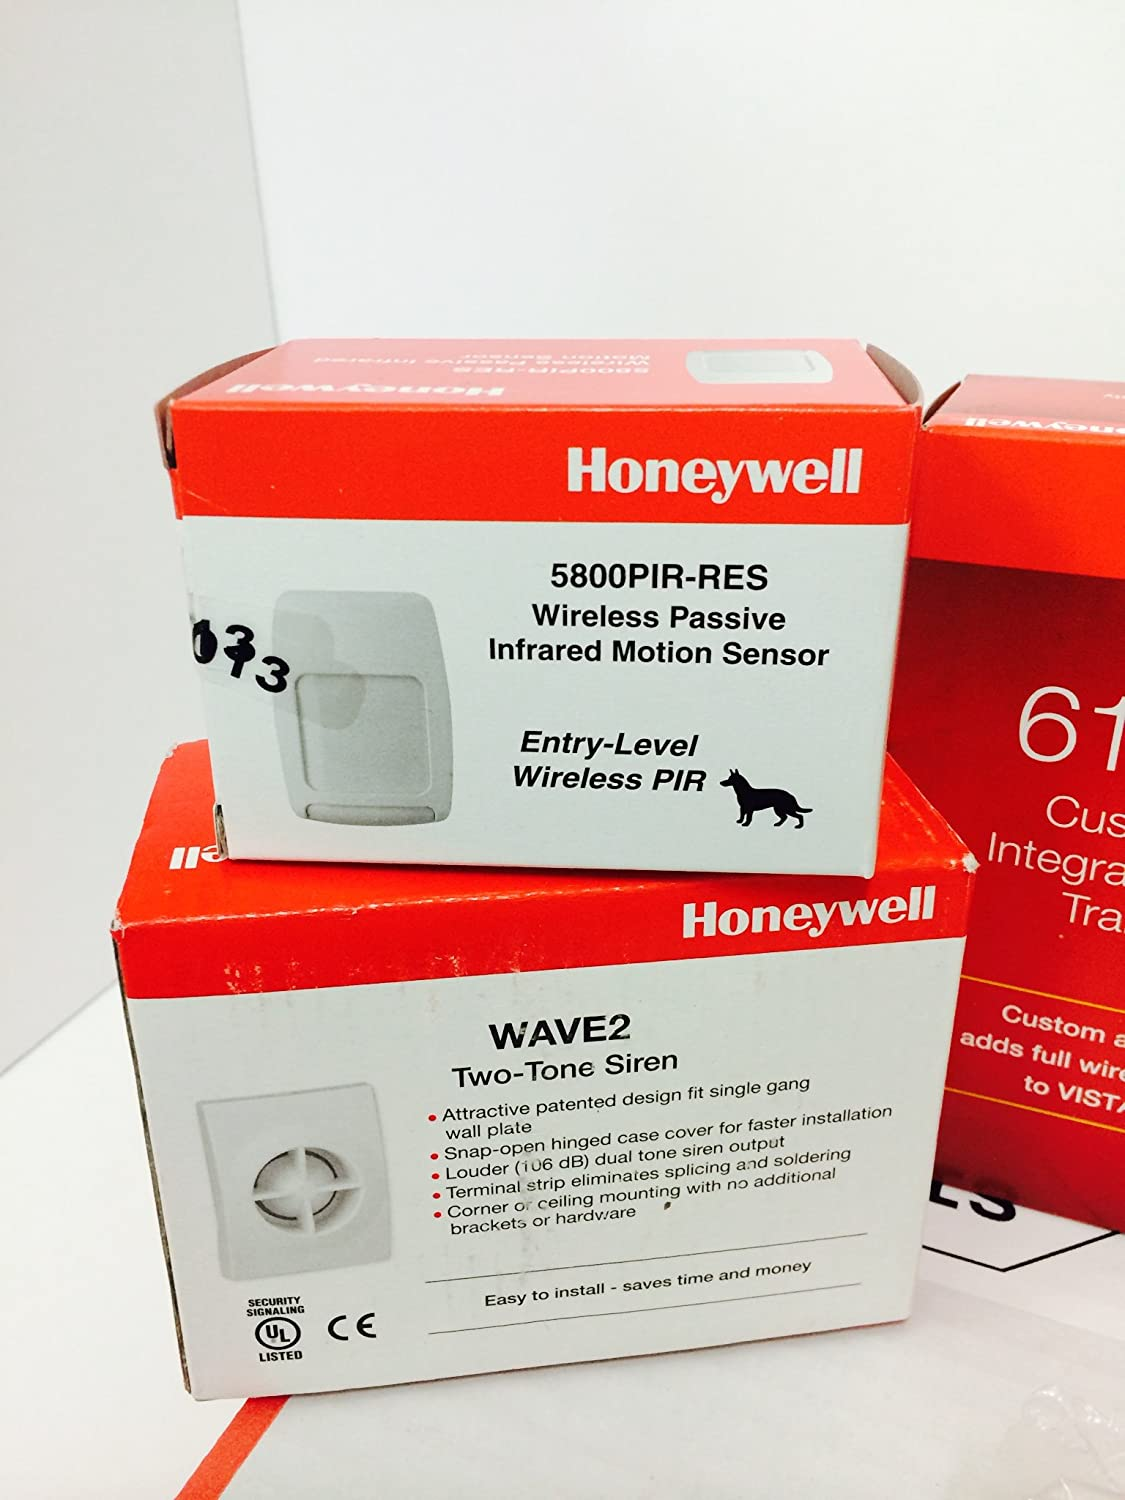 Honeywell Vista 20P, 6160RF, (3) 5816WMWH, (2) 5834-4, 5800PIR-RES, Battery, Siren, Jack and Cord Kit Package